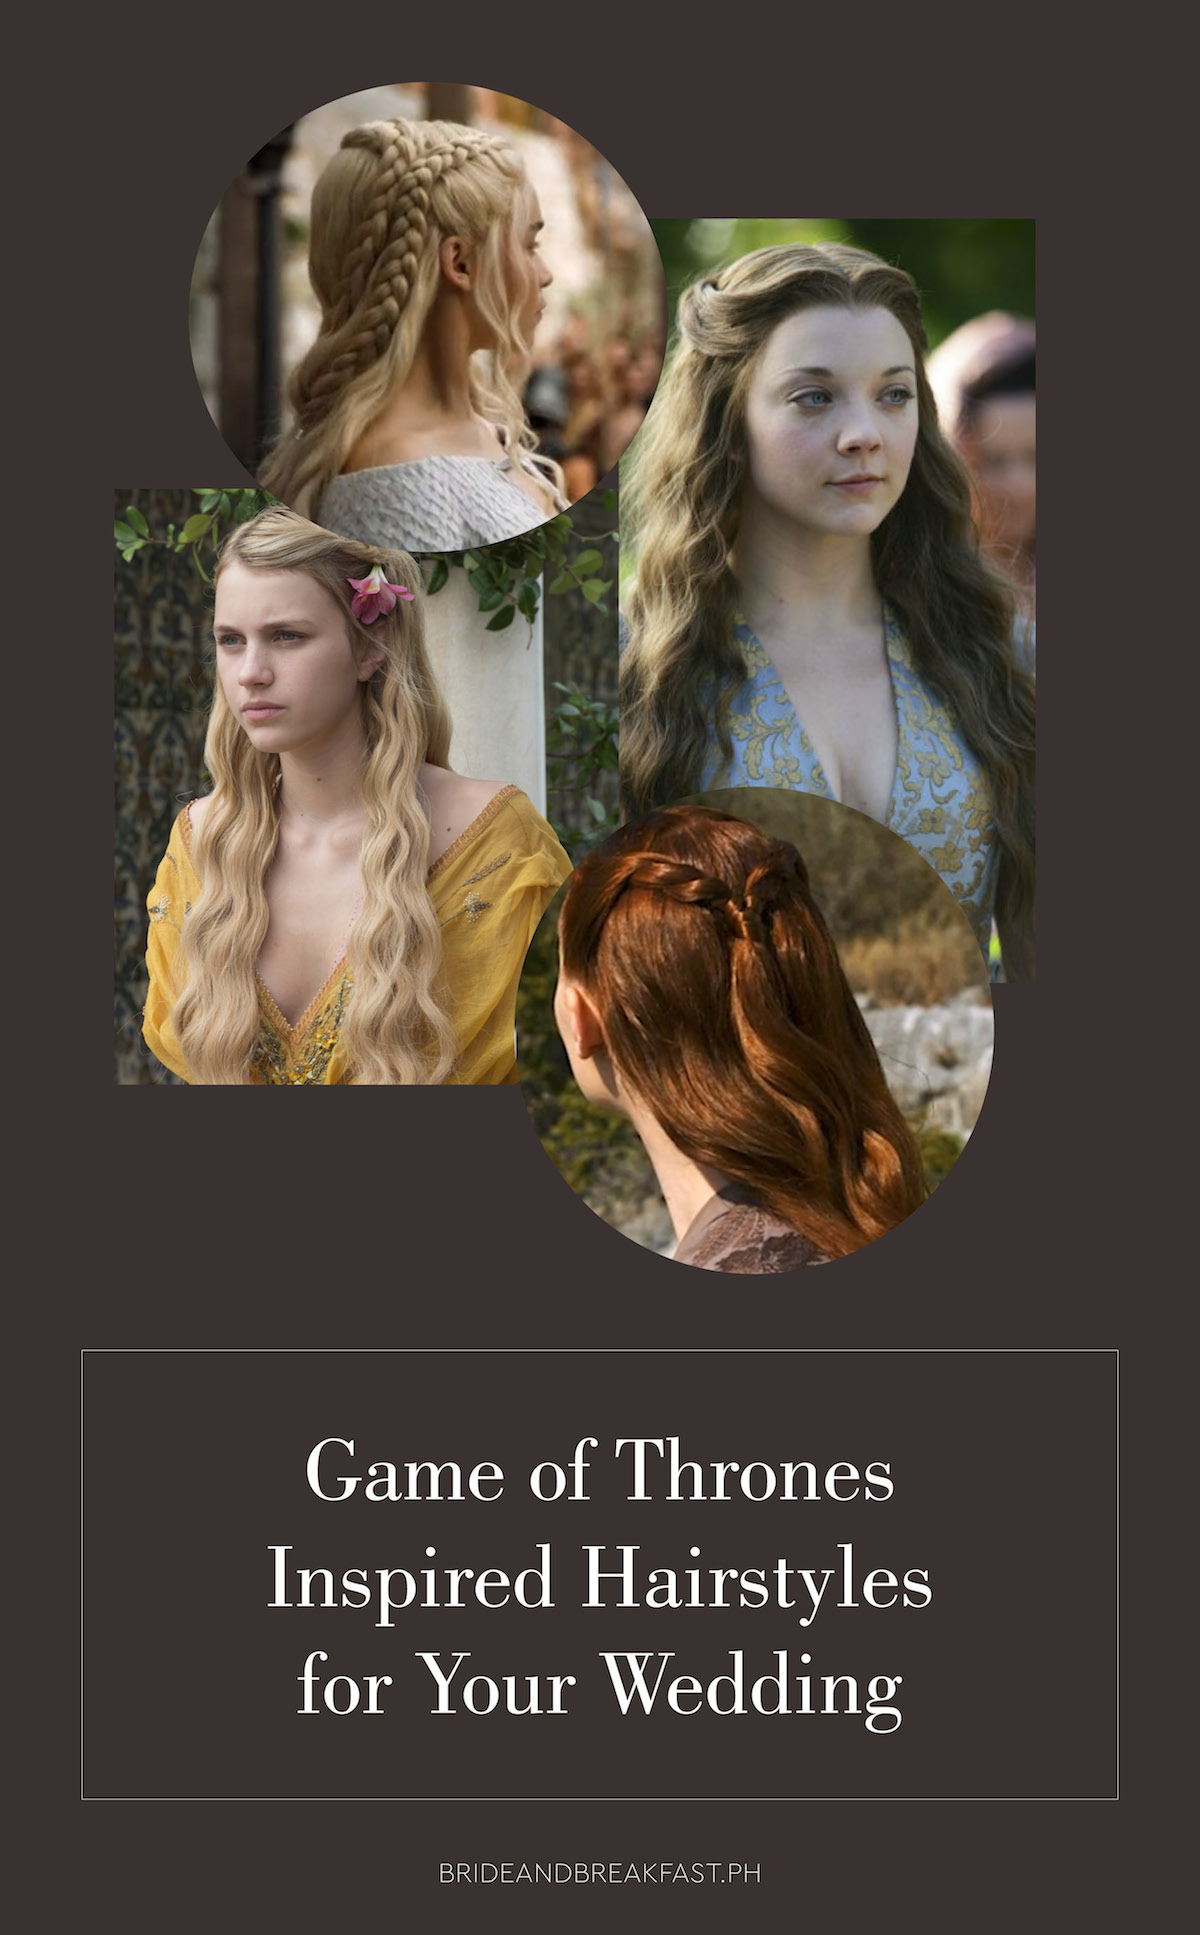 9 characters from game of thrones you can take wedding hairstyle inspo from